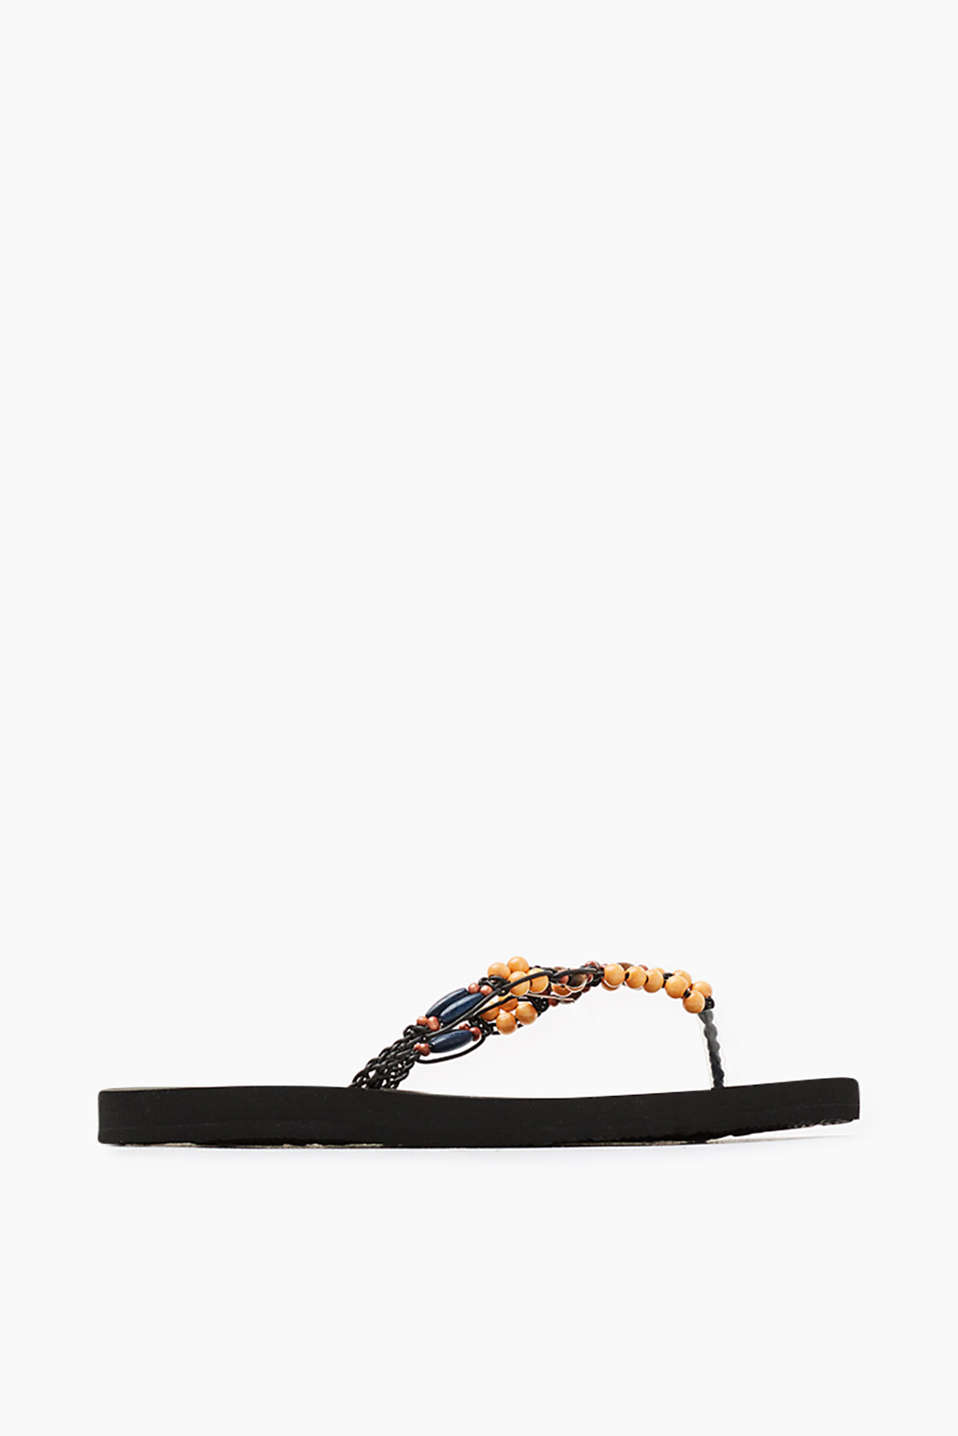 City slip slops with braided straps and a wooden beaded trim